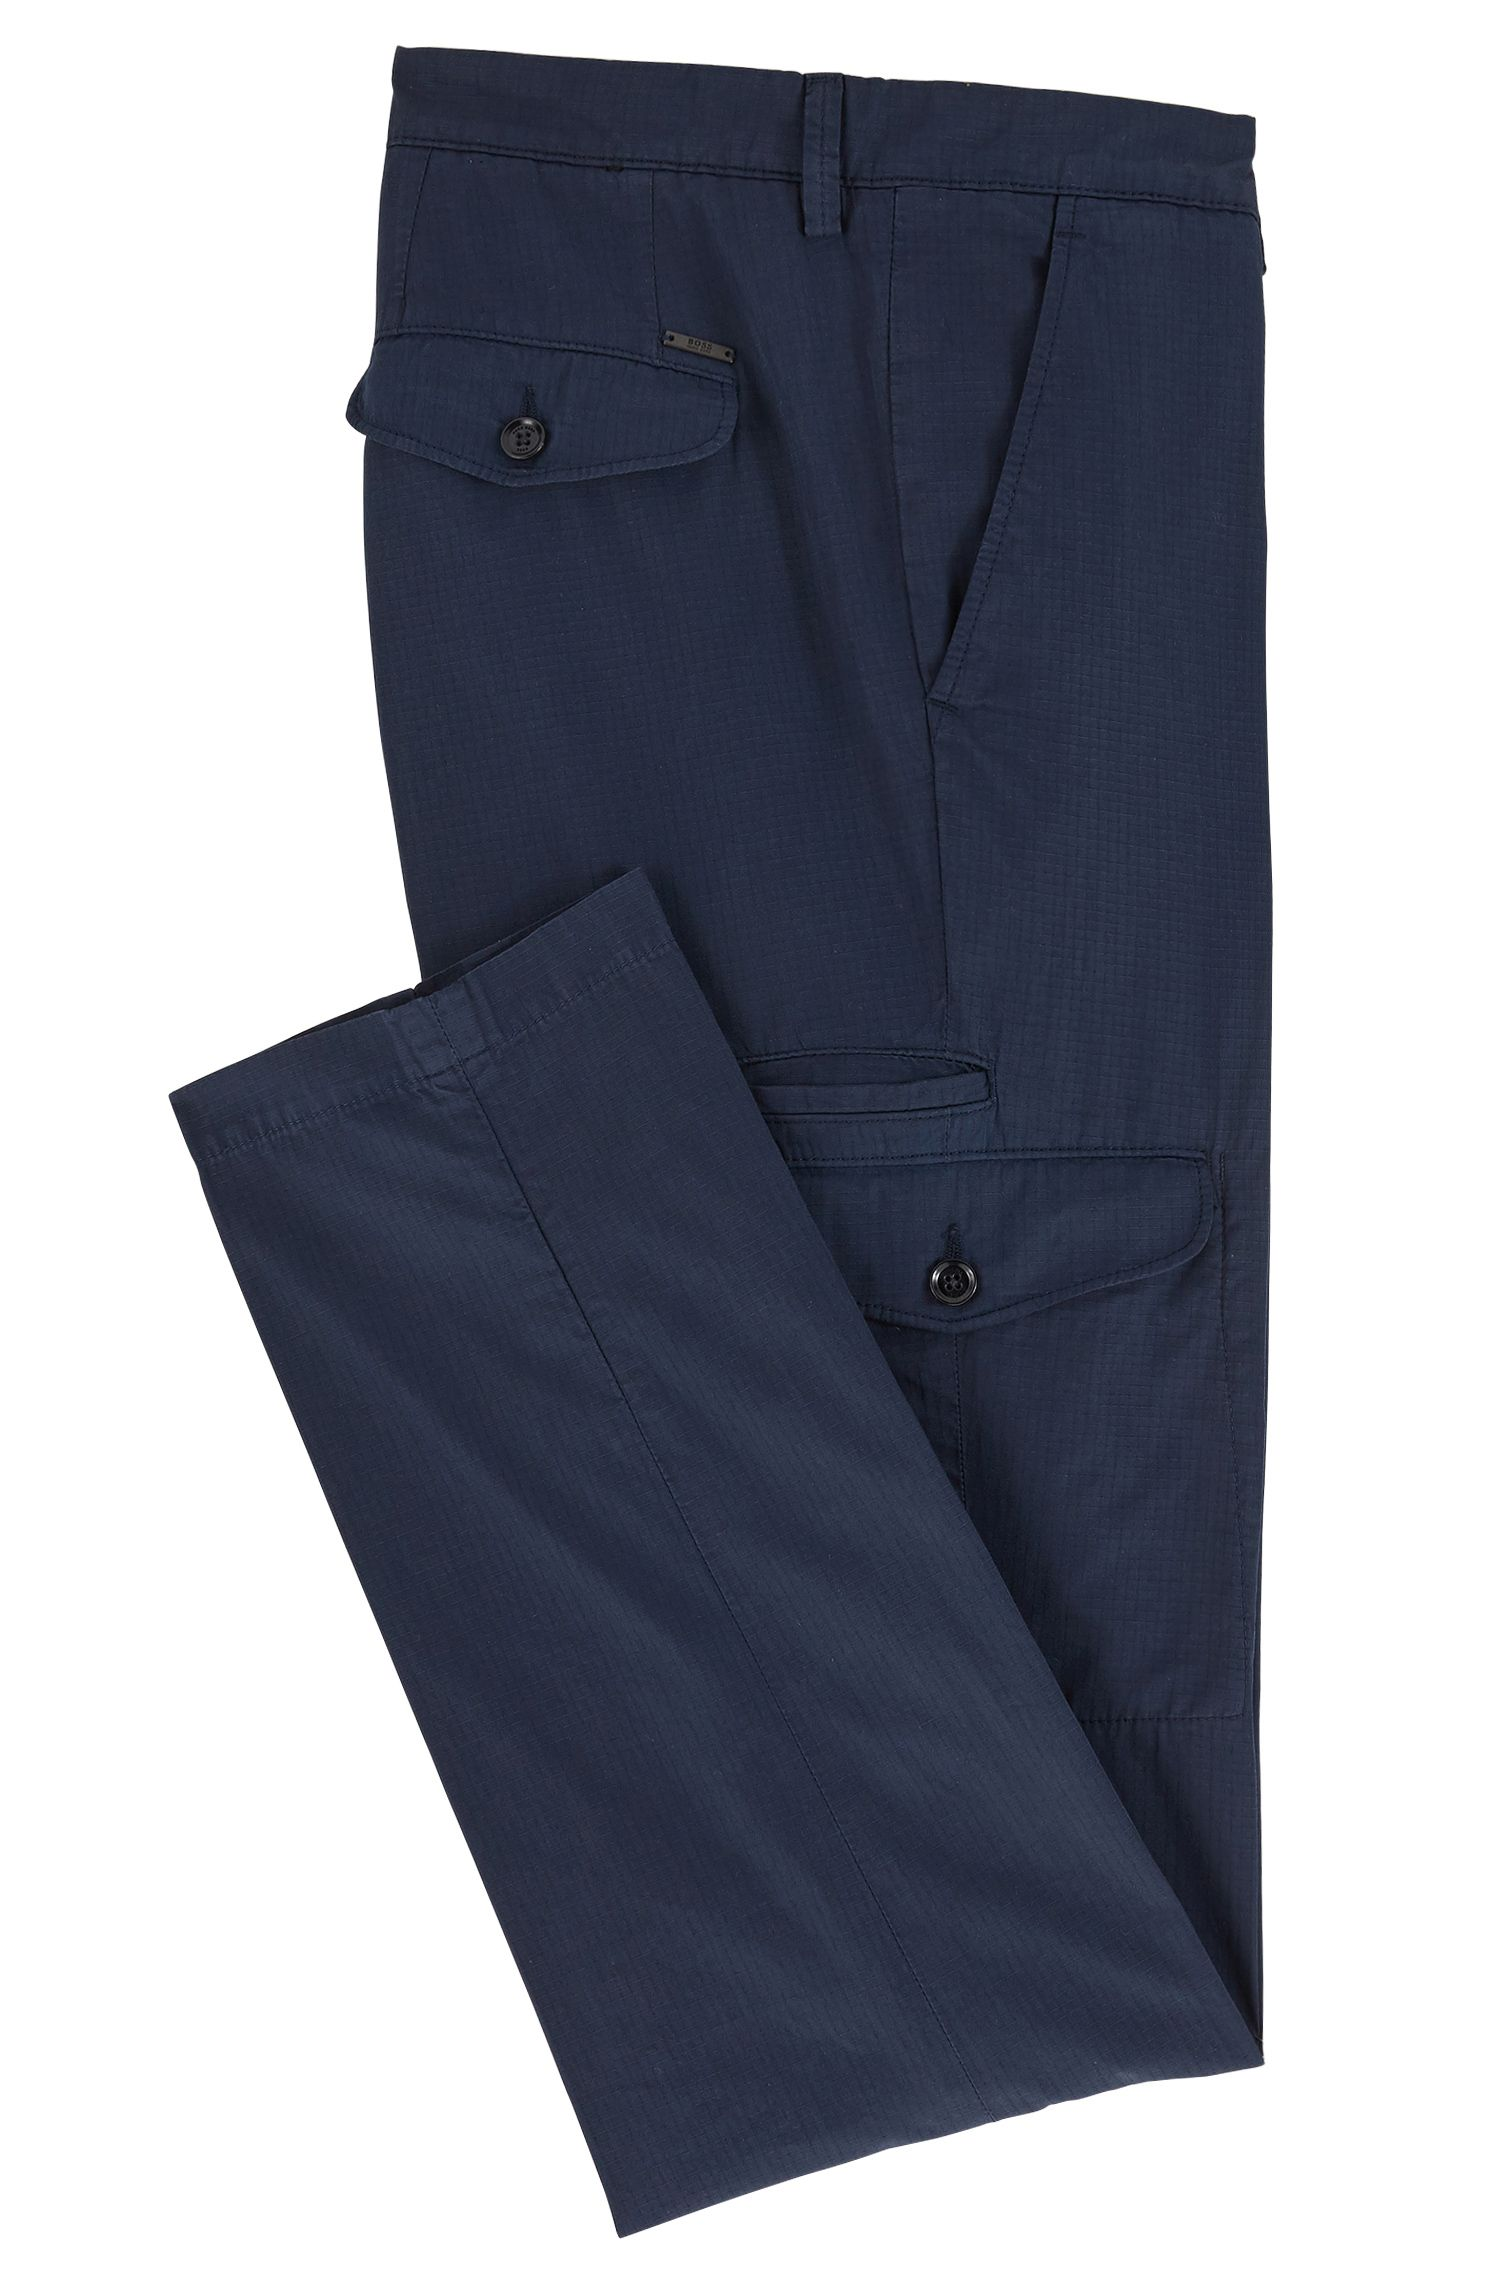 Cotton Cargo Pant, Tapered Fit | Kailo D, Dark Blue